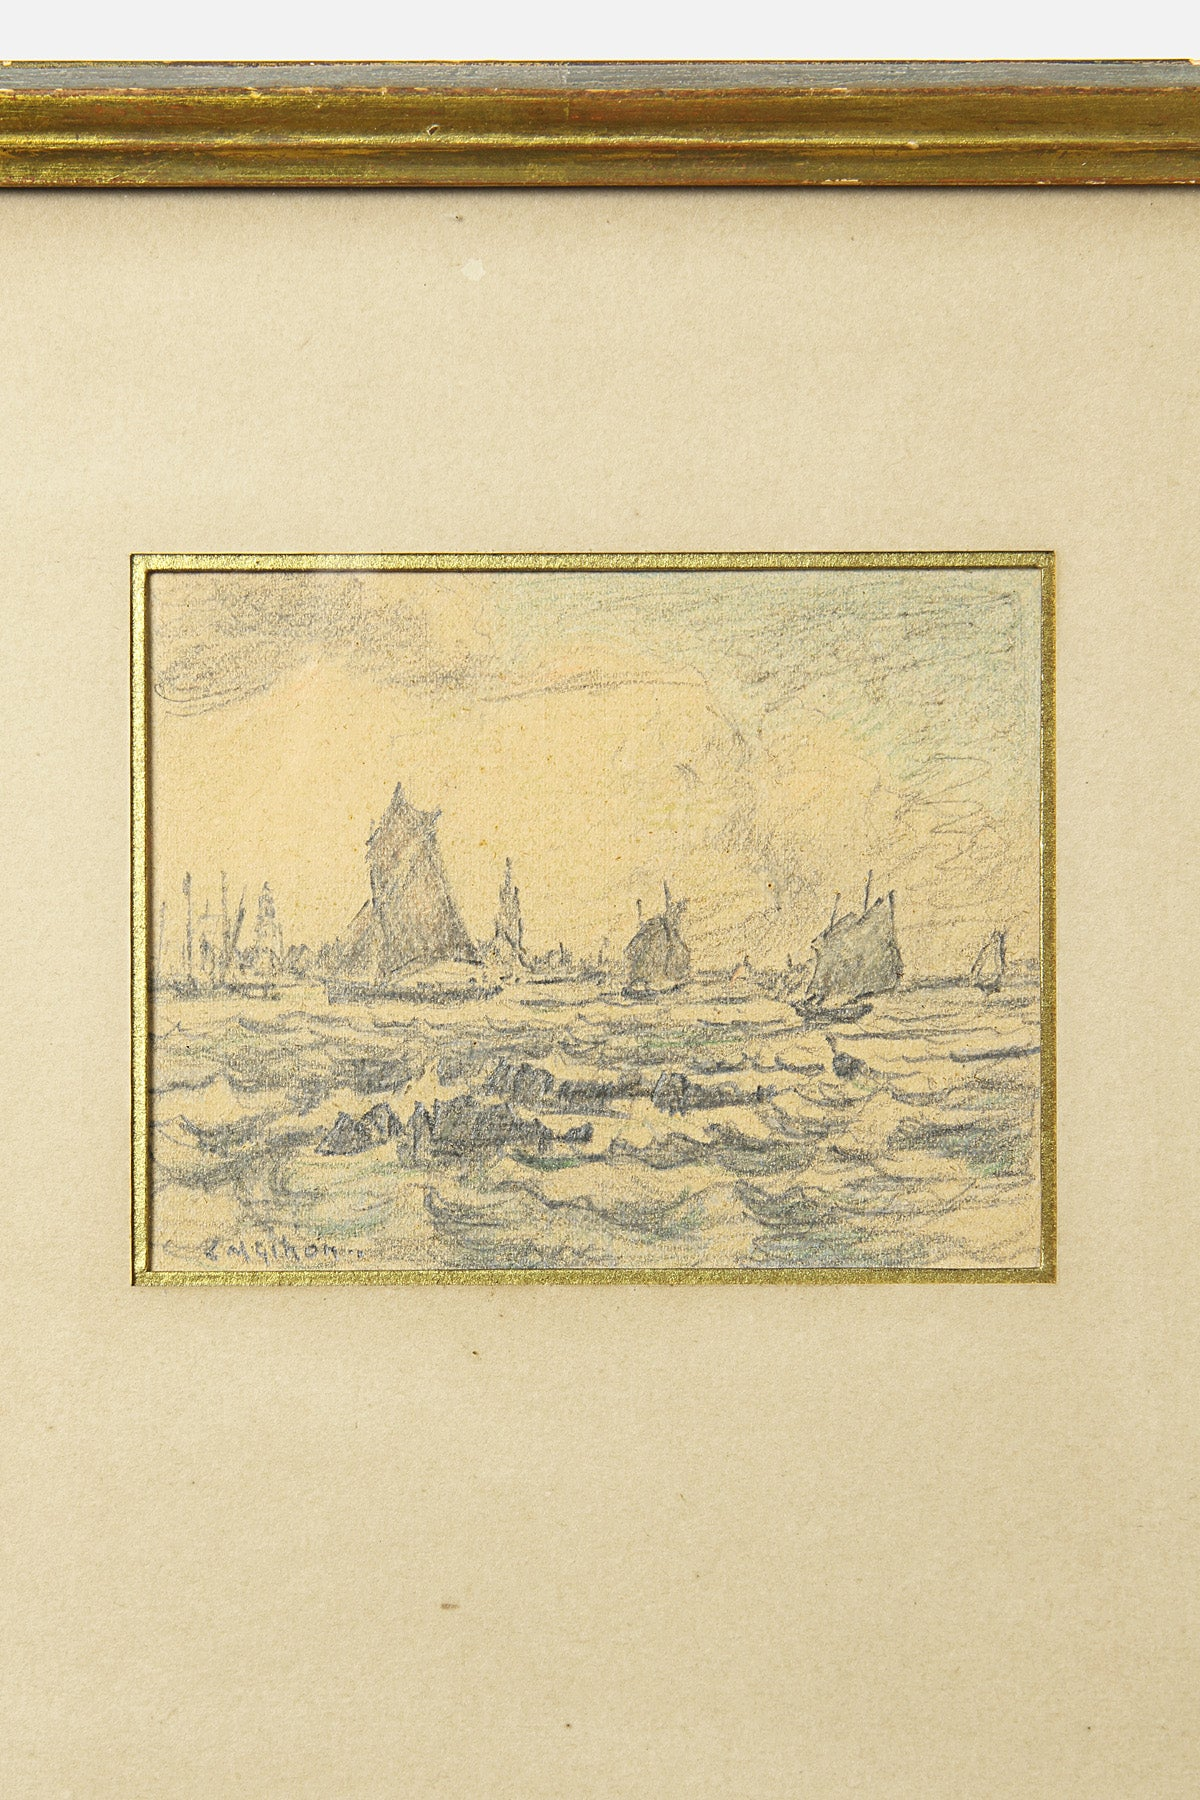 VINTAGE - SEASCAPE WITH SAILING VESSELS - Fortune Goods